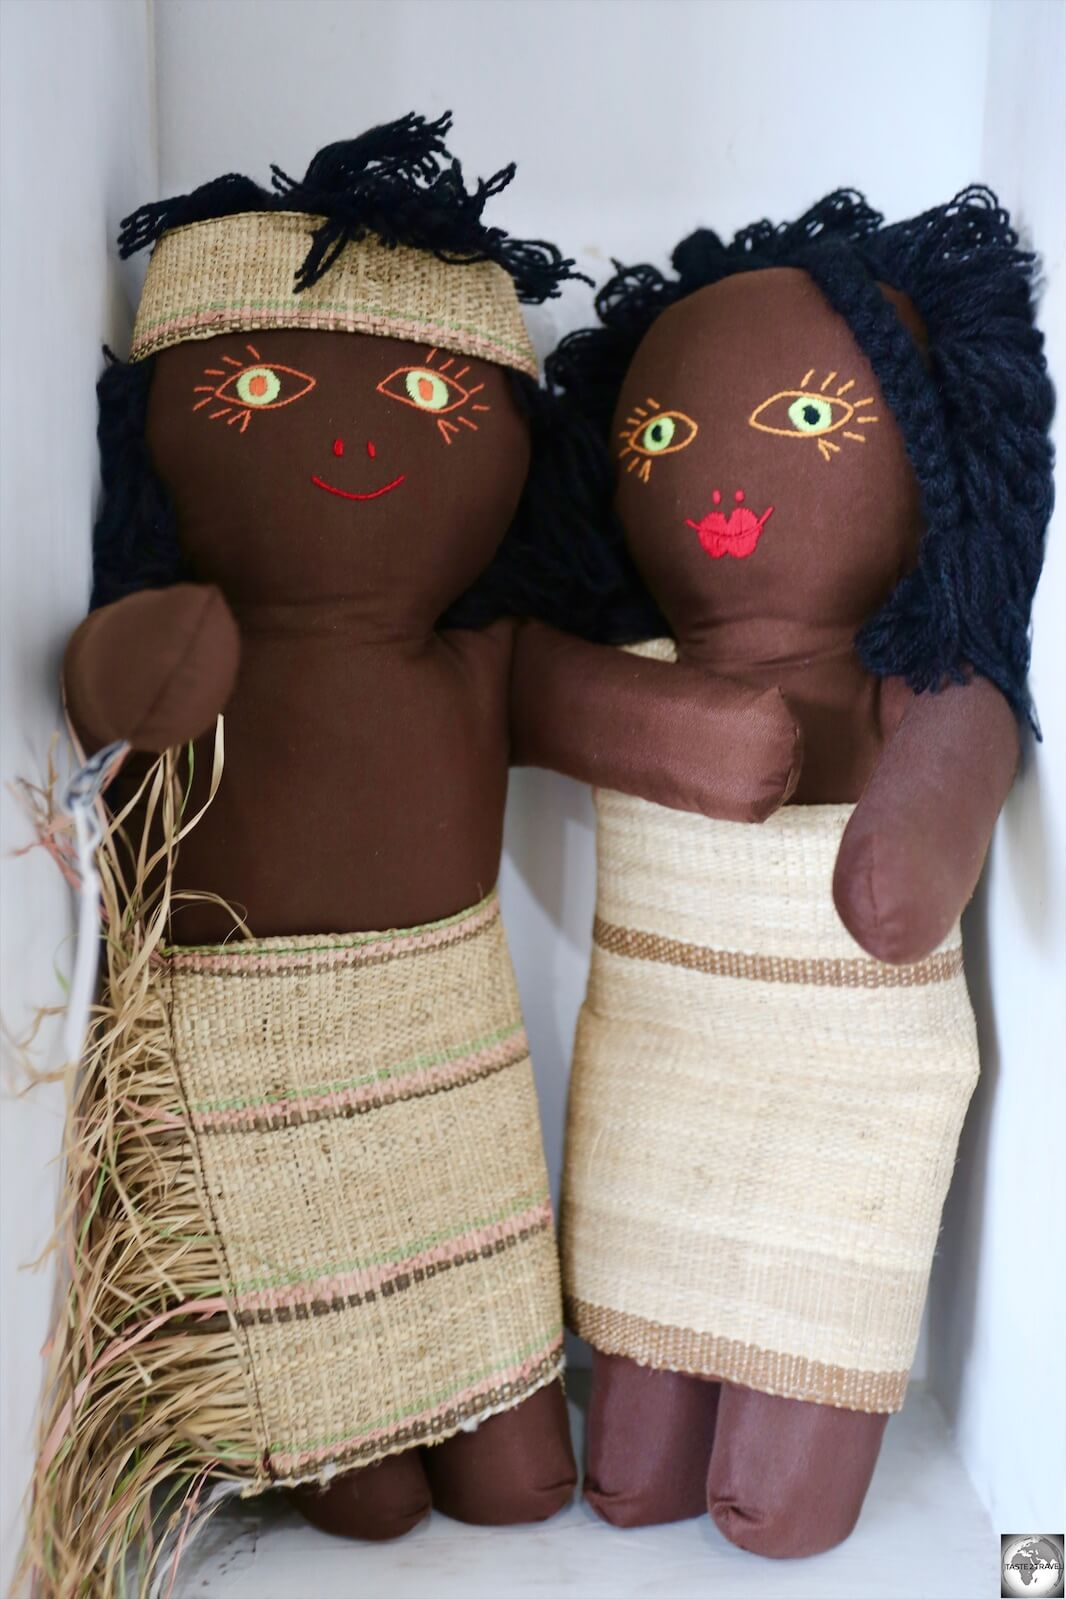 'Palm-Leaf' boy and girl dolls sell for US$25 each at the boutique.